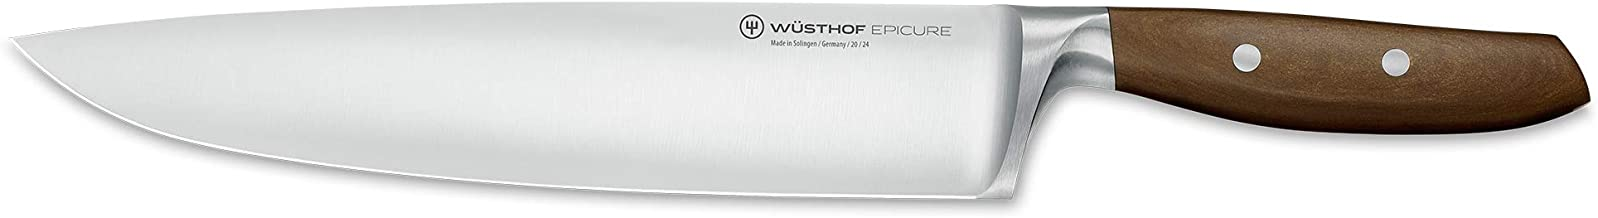 Wusthof 3982-7/24 Epicure Cook's Knife, One Size, Brown, Stainless